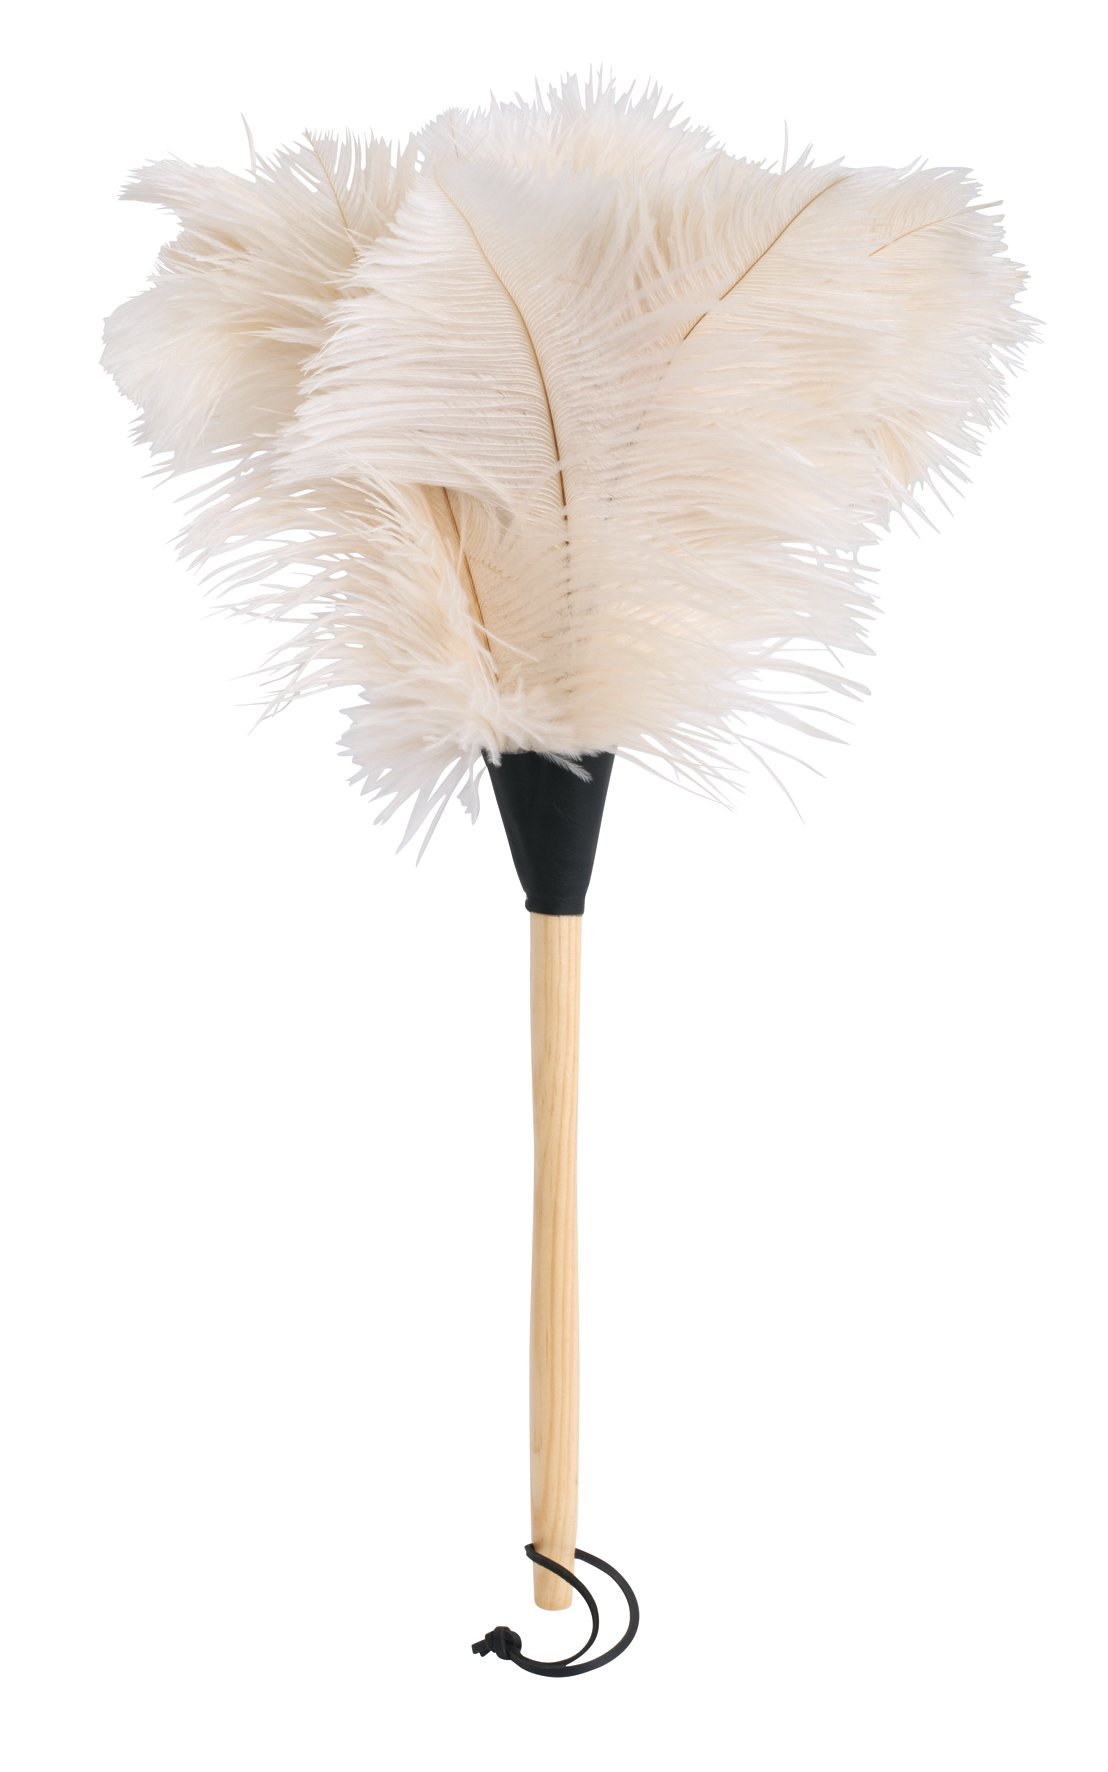 REDECKER Ostrich Feather Duster with Varnished Wooden Handle, White, 19-3/4-Inches, Set of 2 by REDECKER